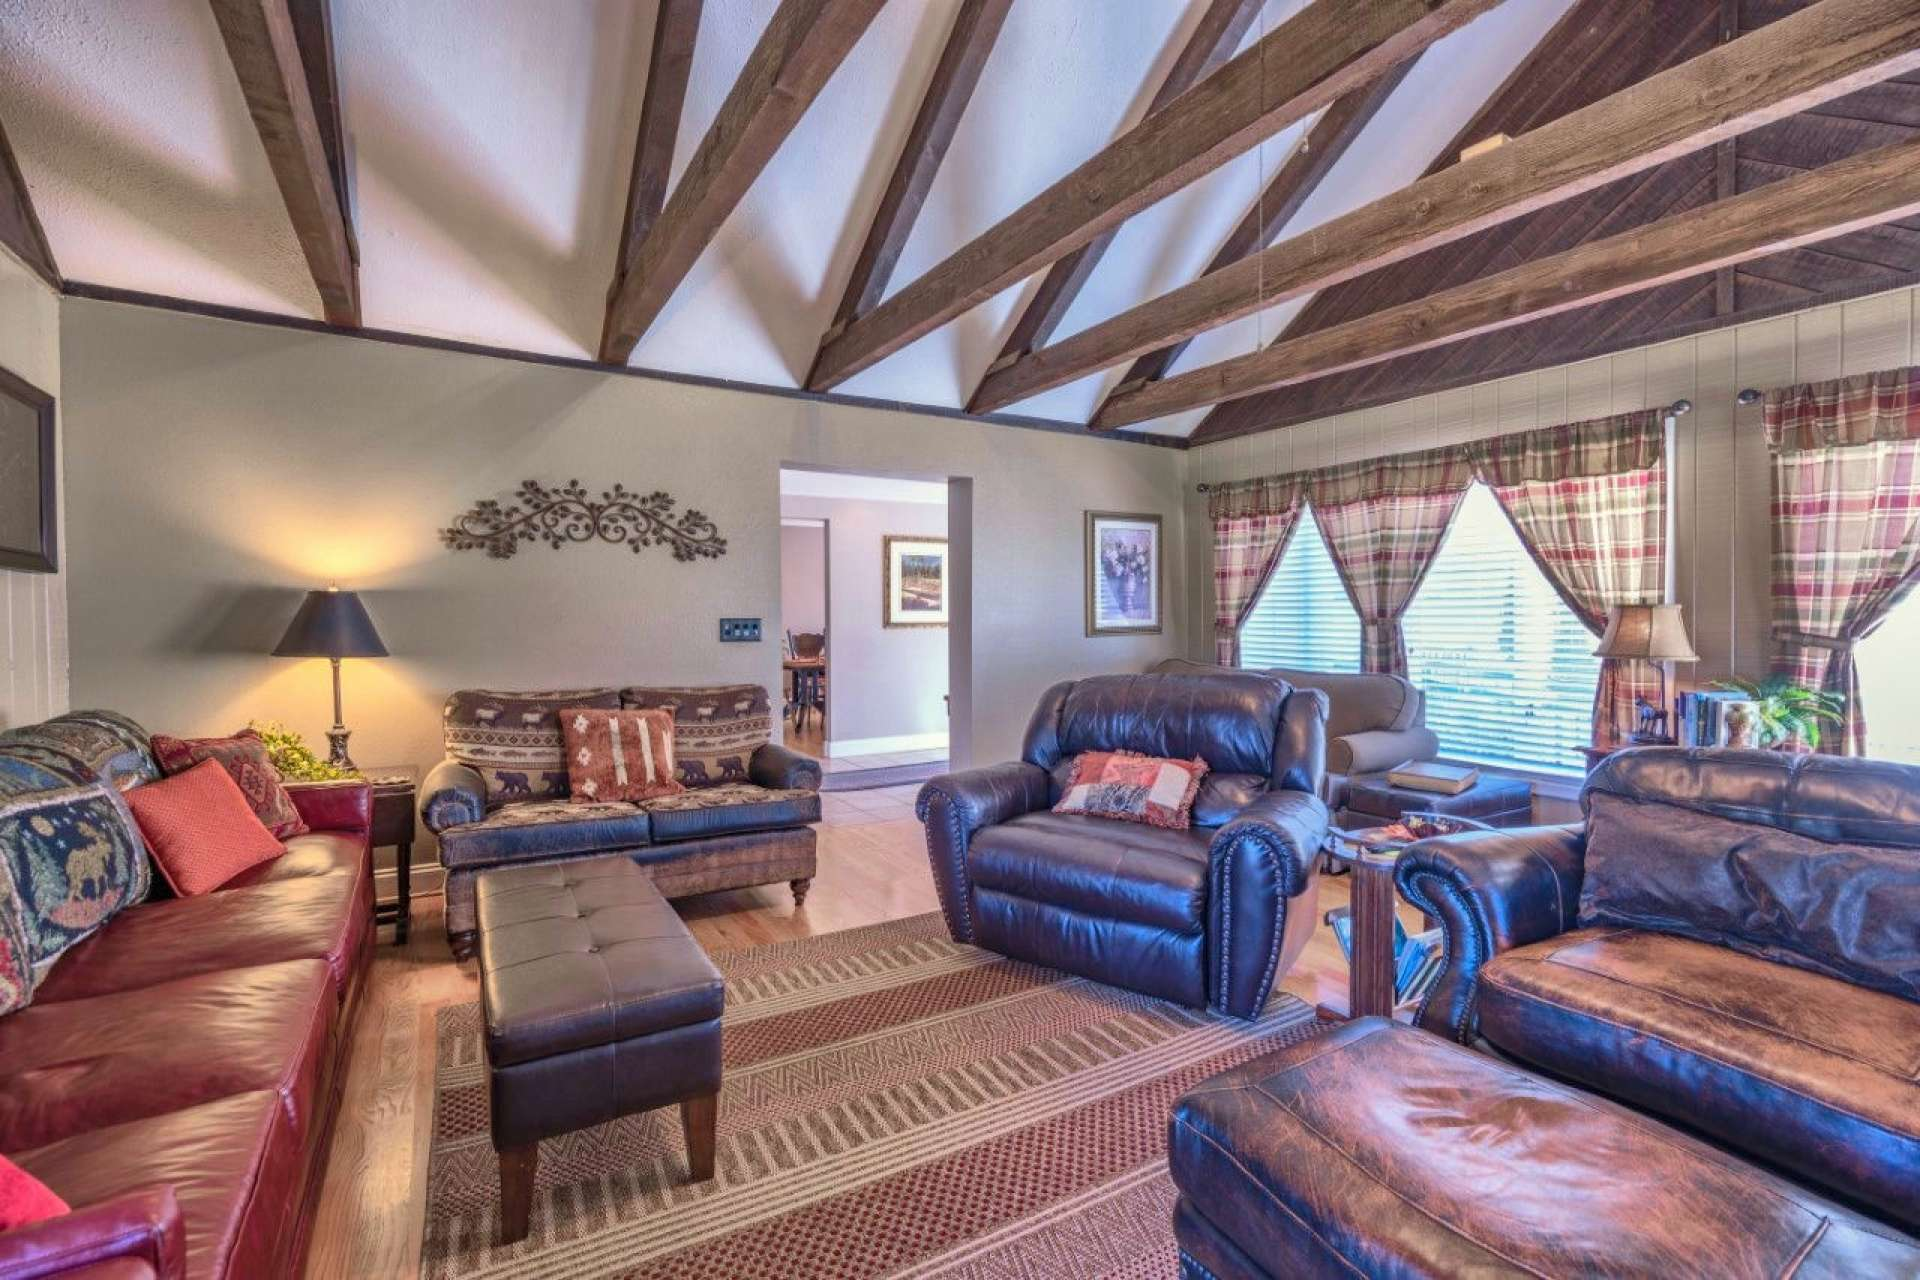 You will enjoy the craftsman style details in the large vaulted living area with lots of space for entertaining.